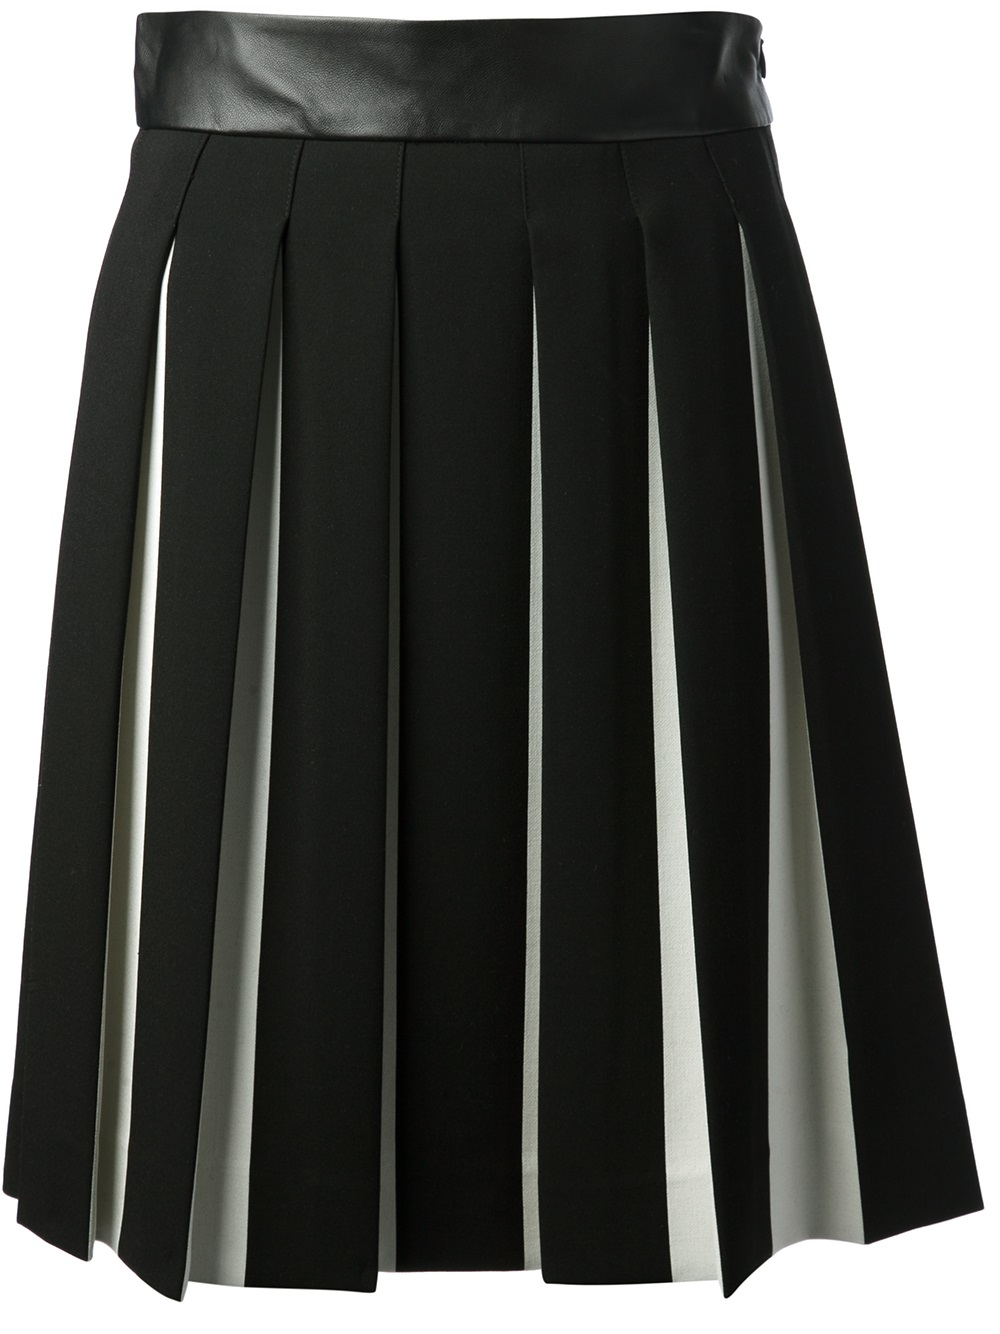 milly box pleat skirt in black lyst